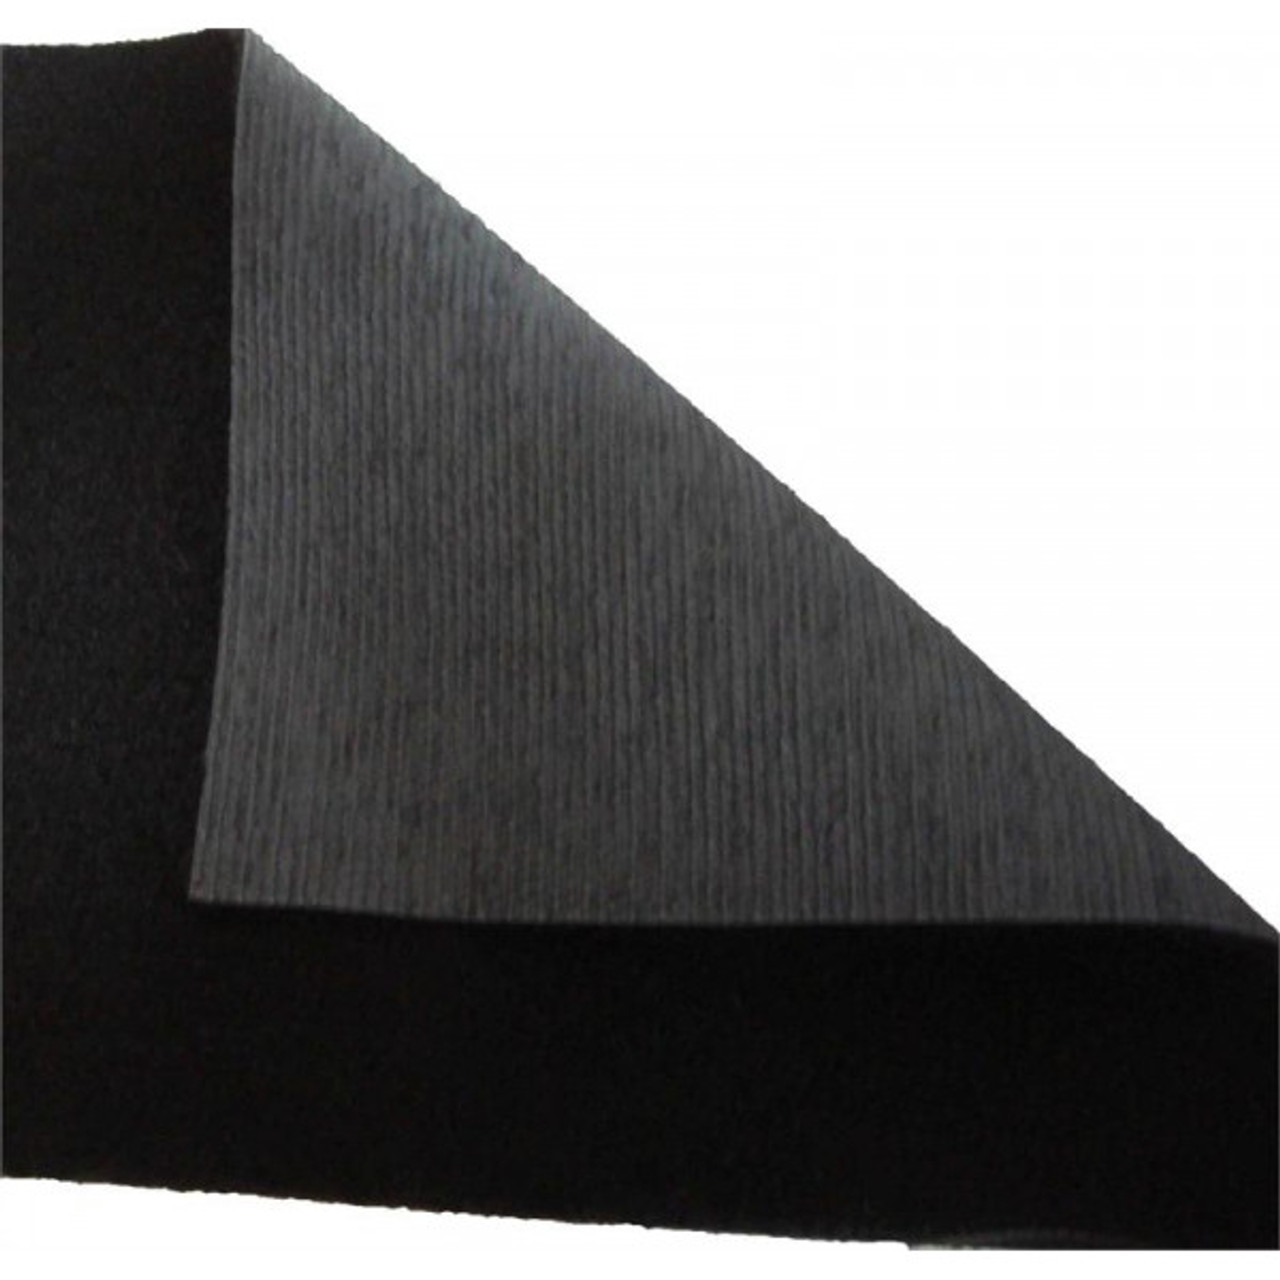 Dorsett Marine Rubber Backed Trailer Bunk Carpet 10 14 Width Black Sold By The Foot Boater S Outlet